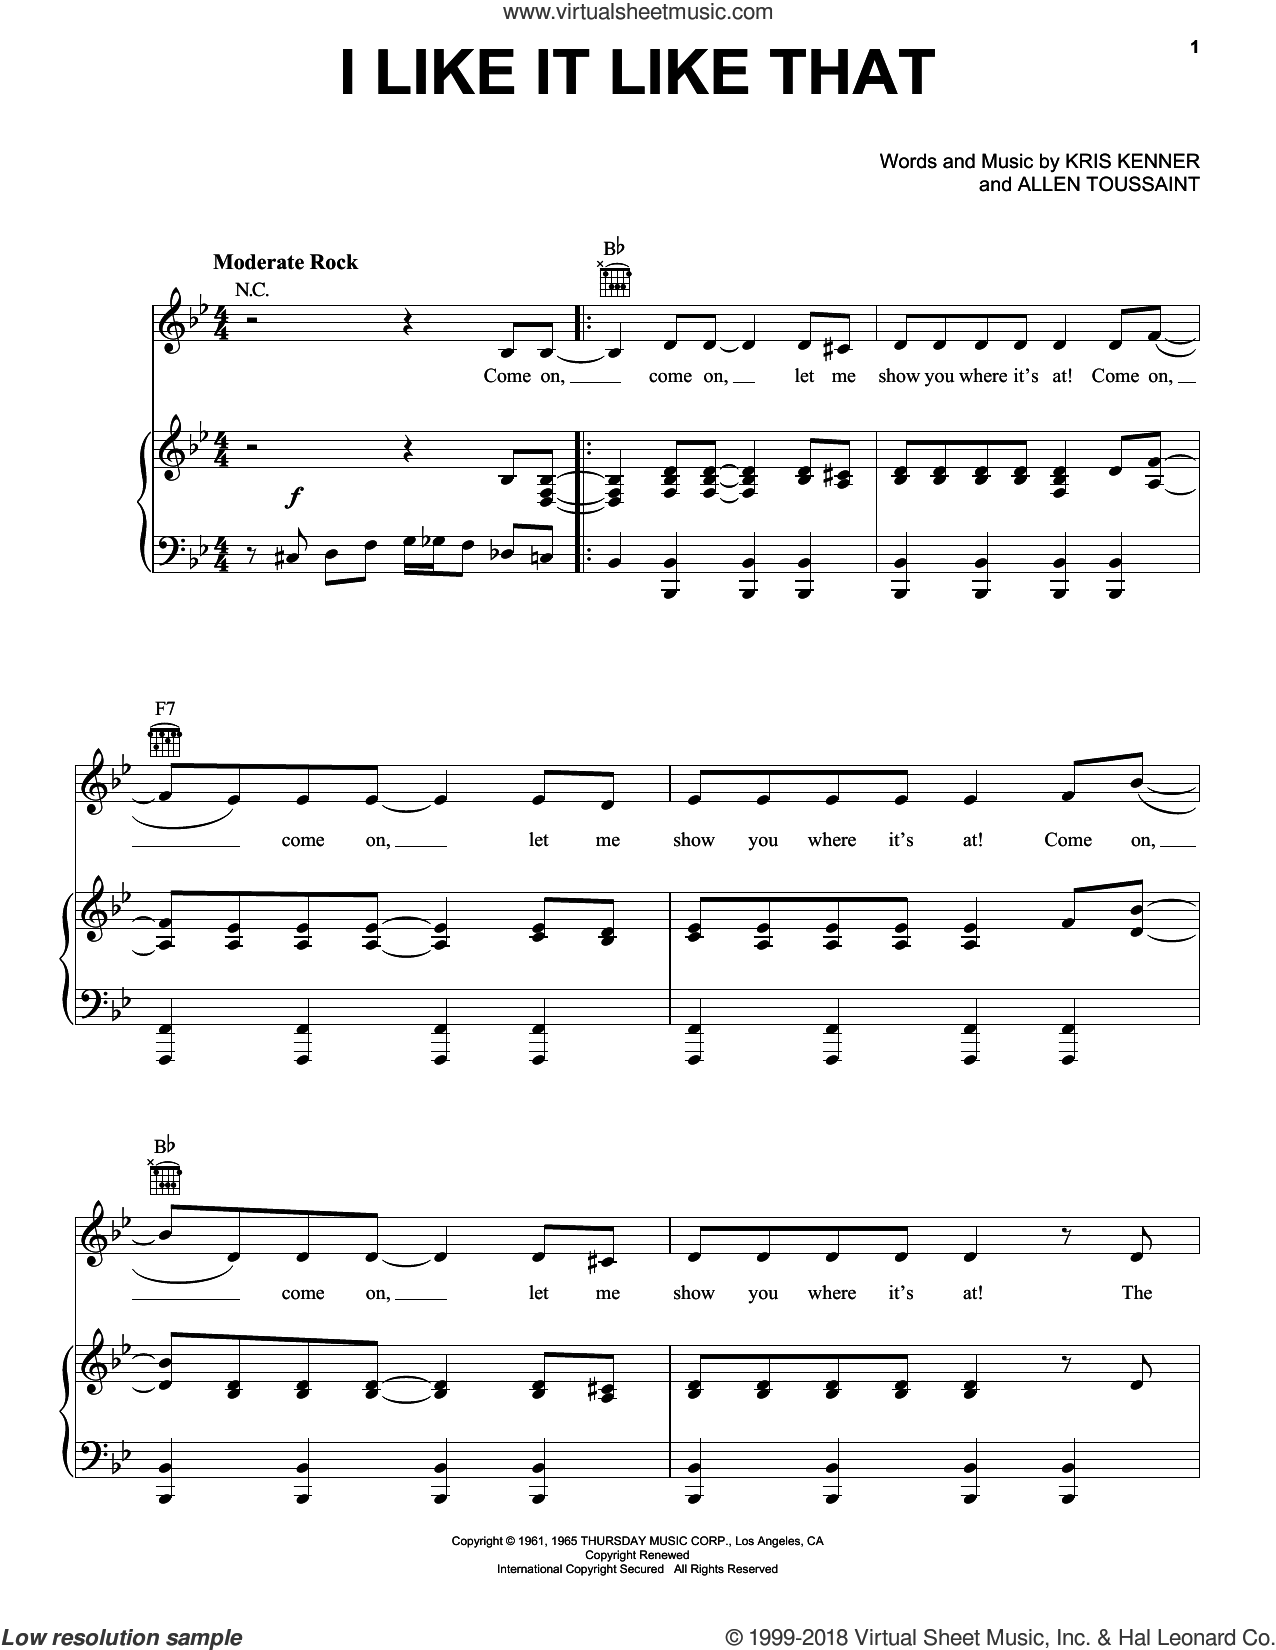 I Like It Like That sheet music for voice, piano or guitar by Dave Clark Five, intermediate voice, piano or guitar. Score Image Preview.